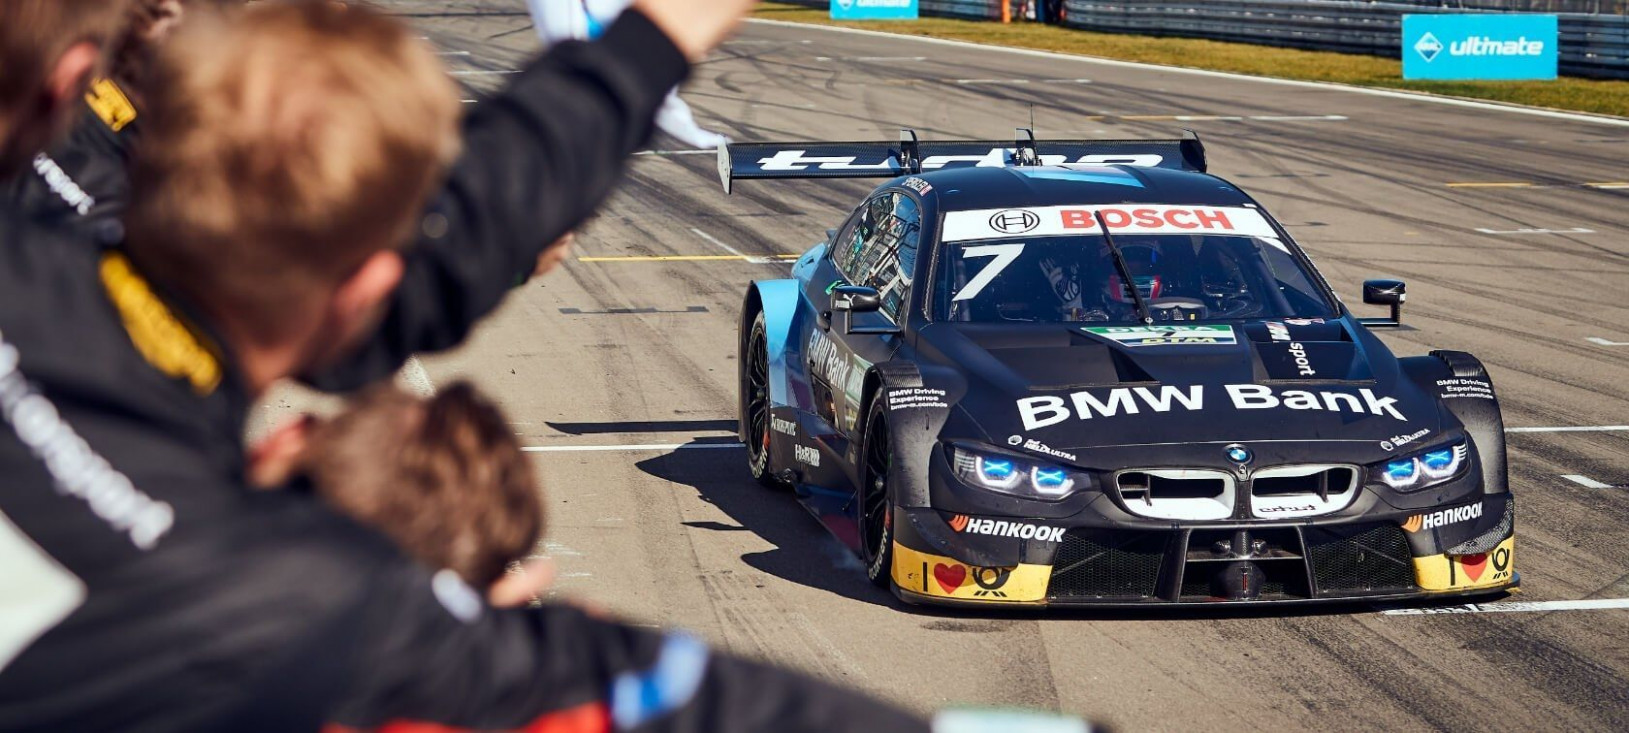 6 Bmw Dtm in 6 (With images) | Sports cars, Bmw, Jeep ..